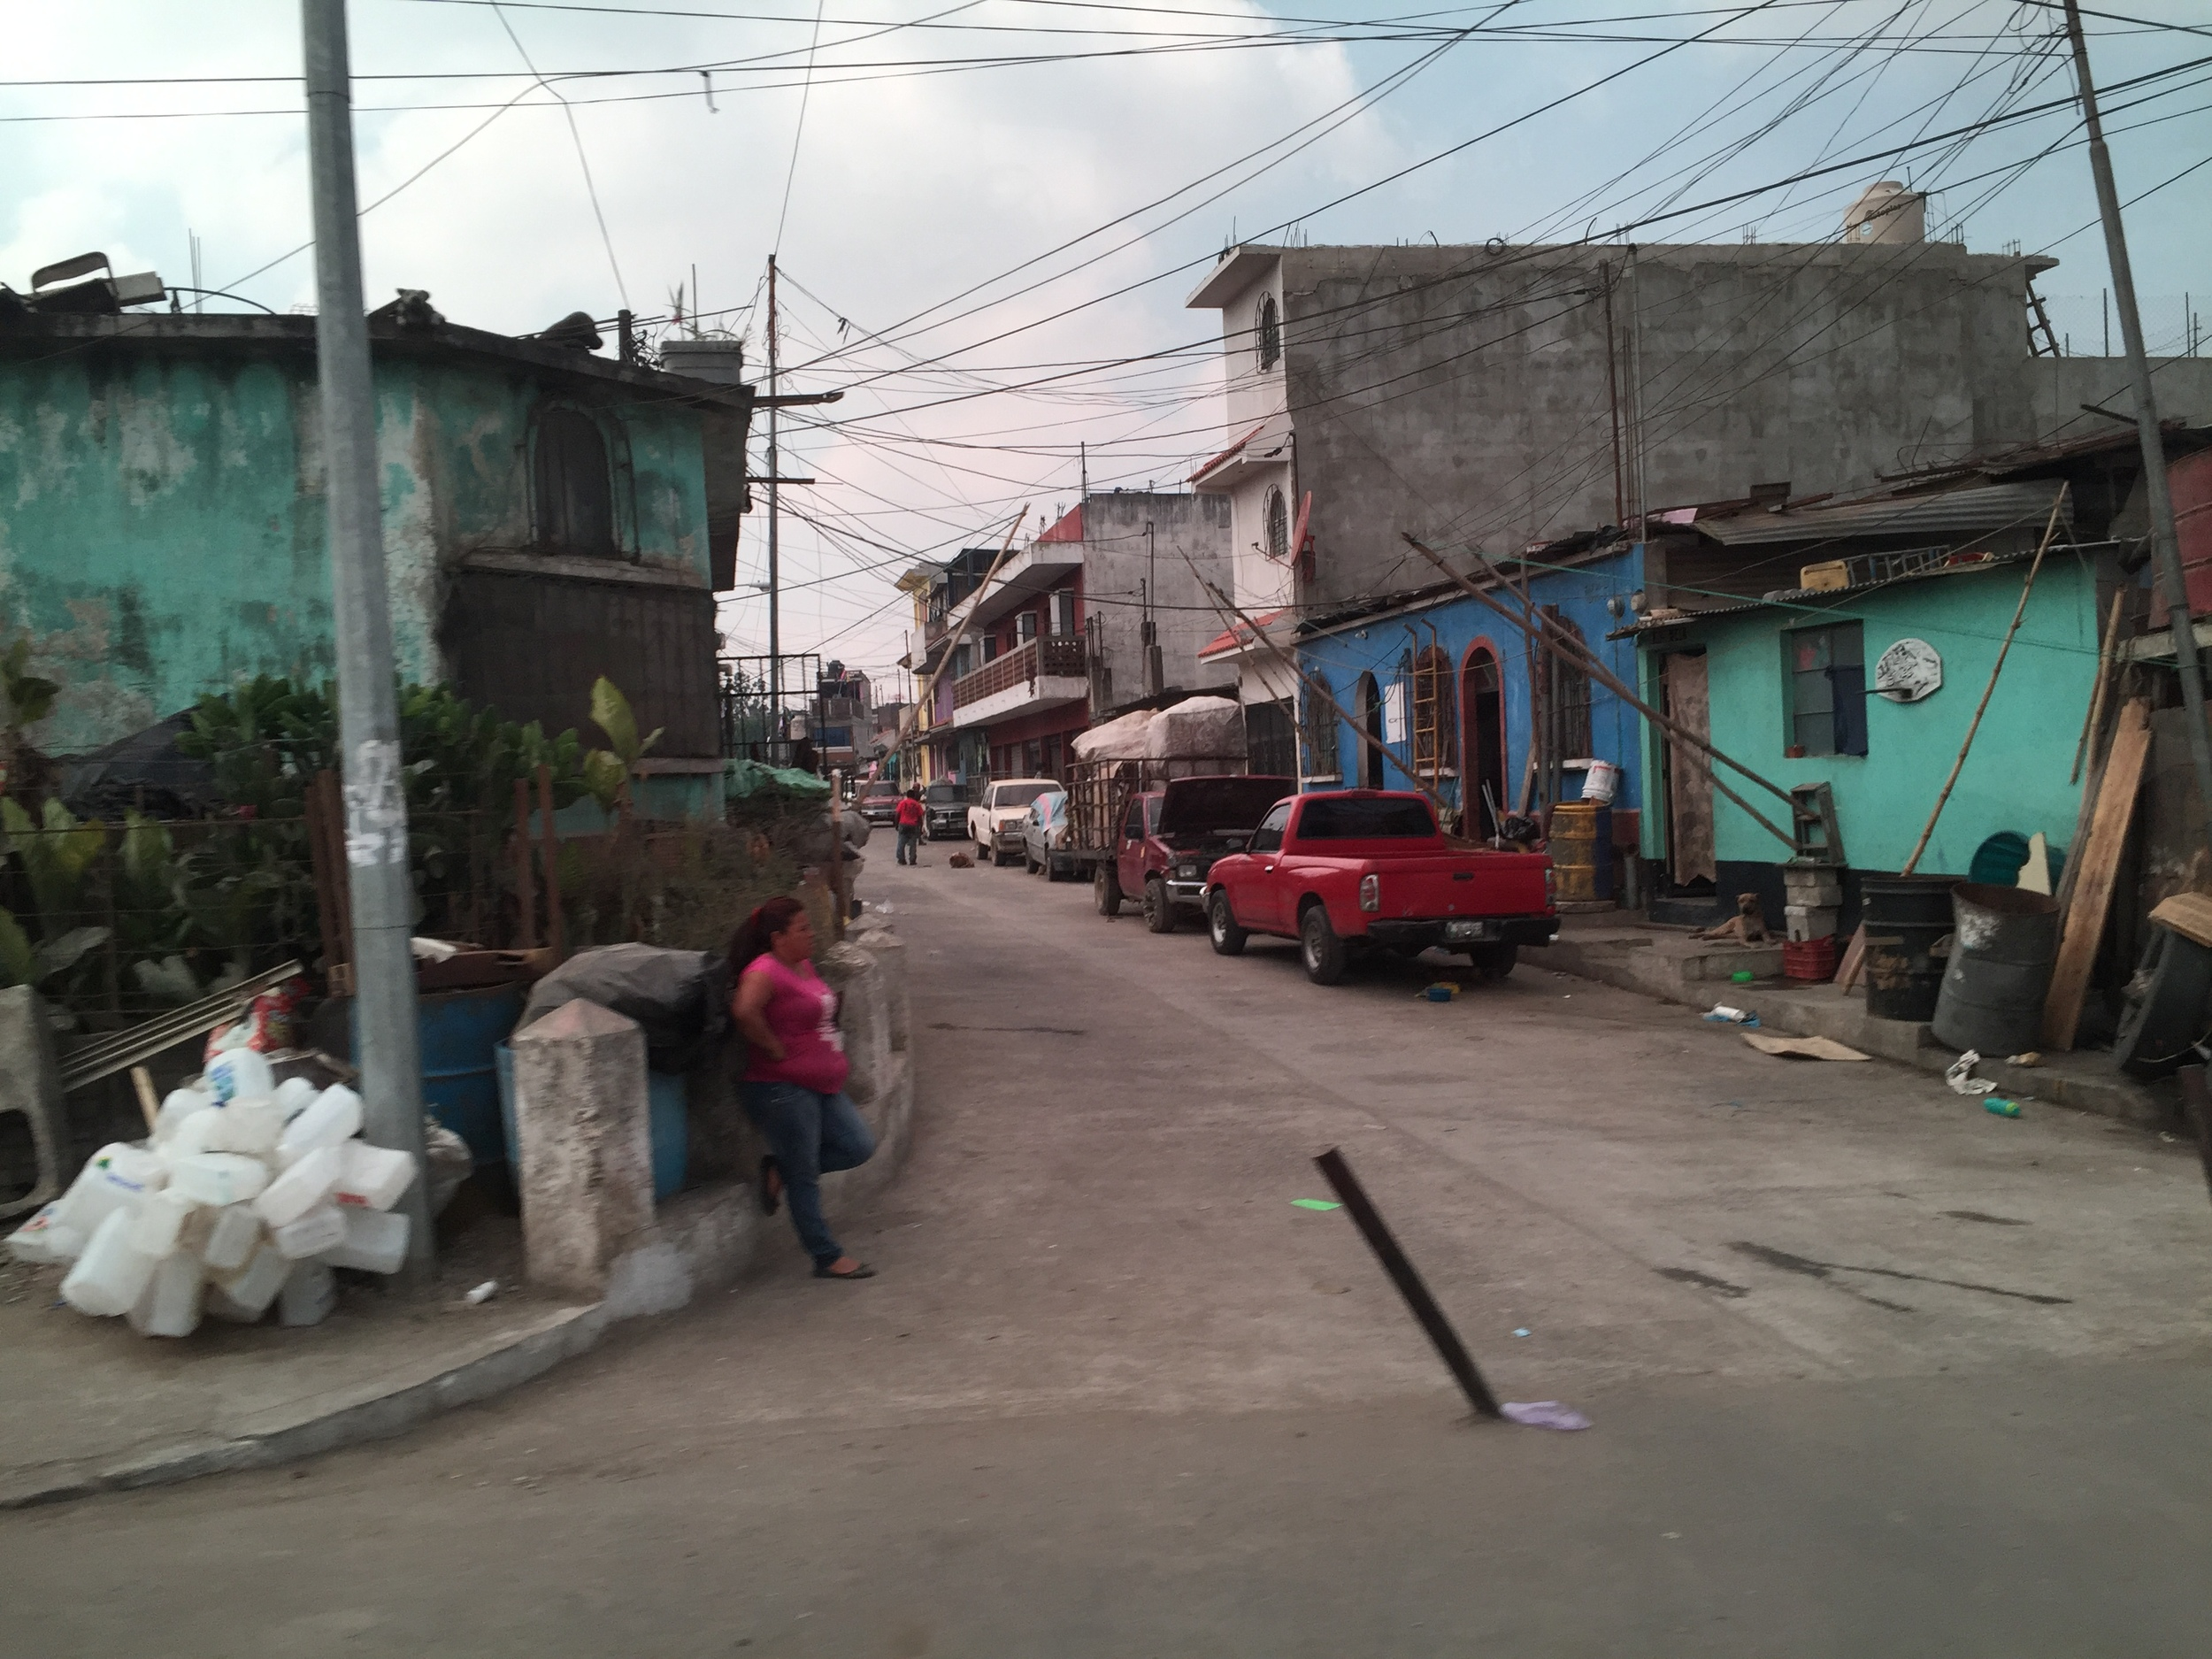 A main street in Zone 3, where the Guatemala City Garbage Dump provides the only source of income for residents.